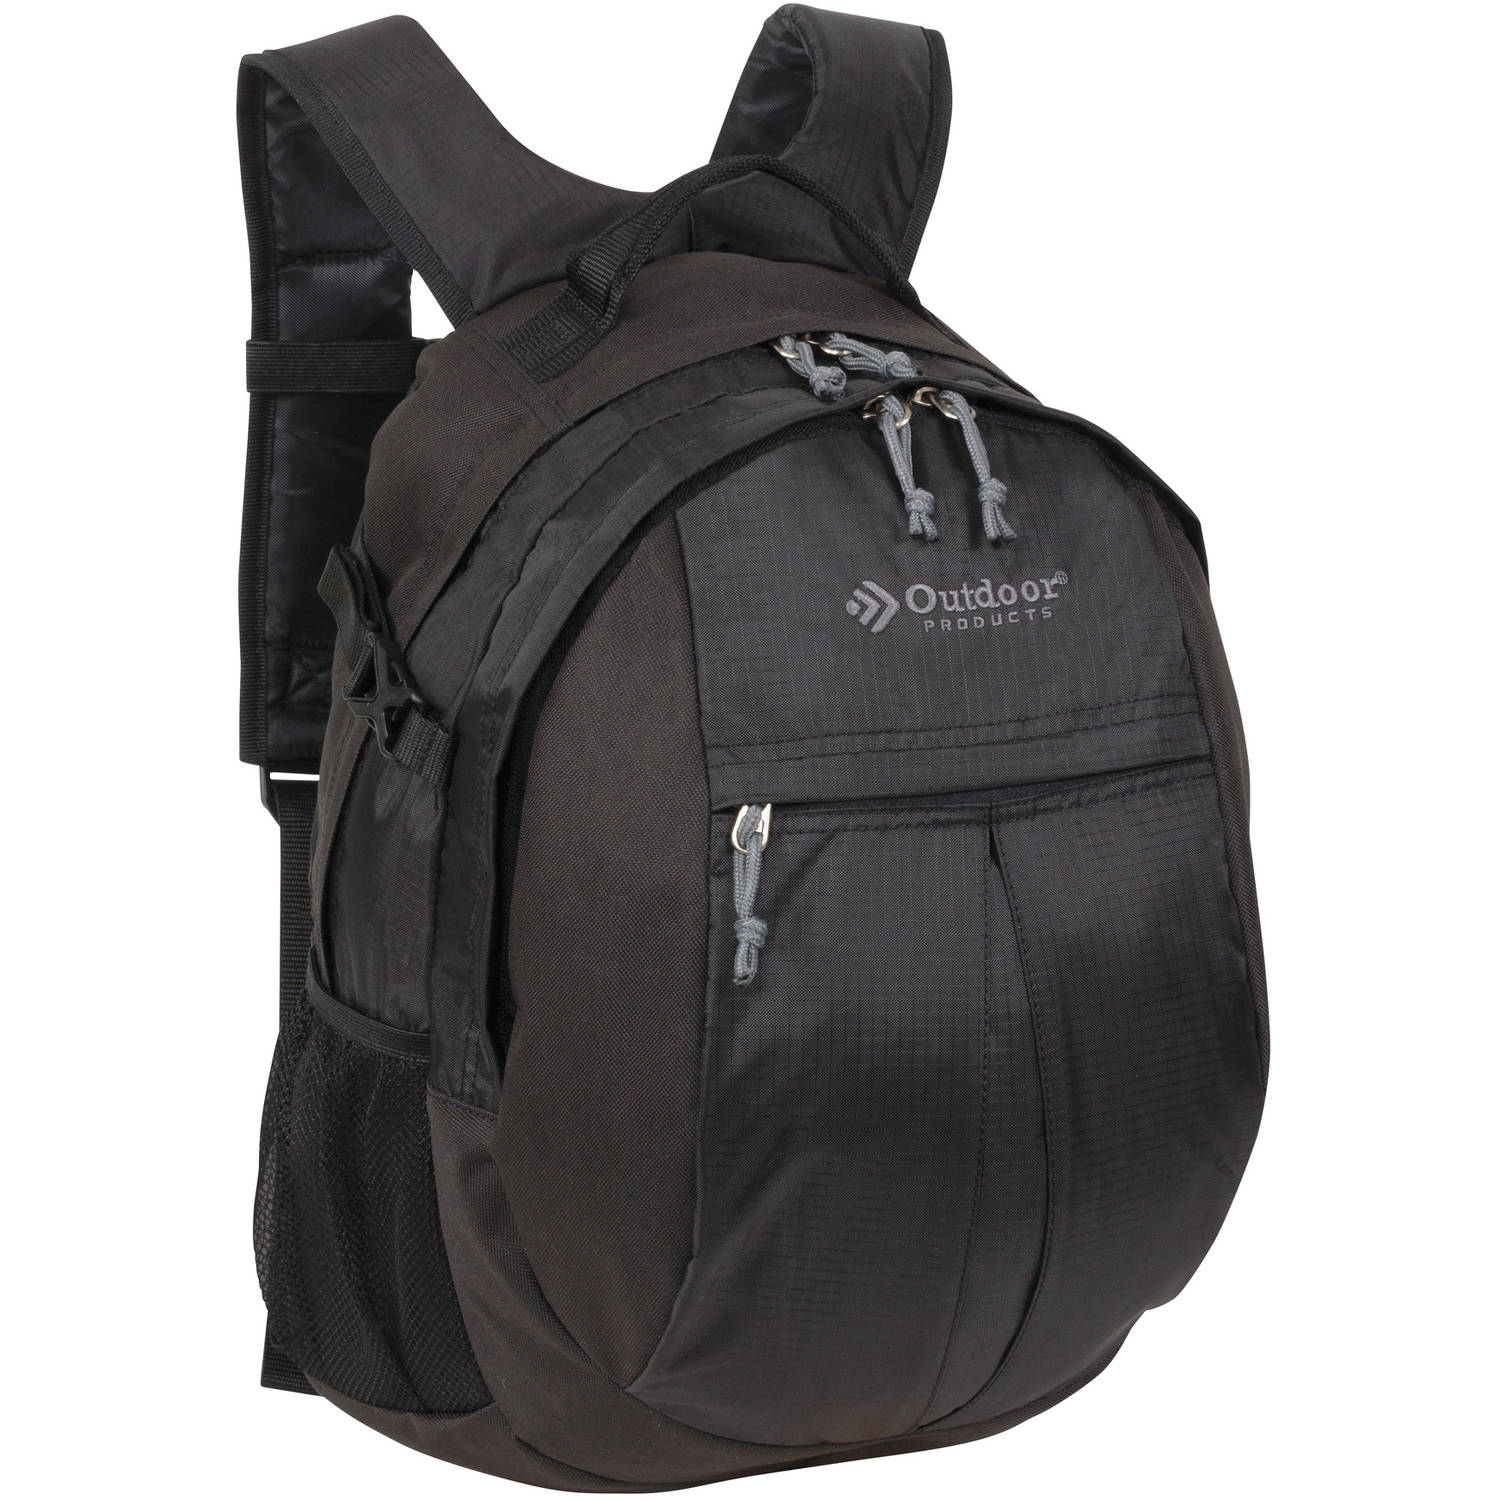 Outdoor Products Traverse Backpack